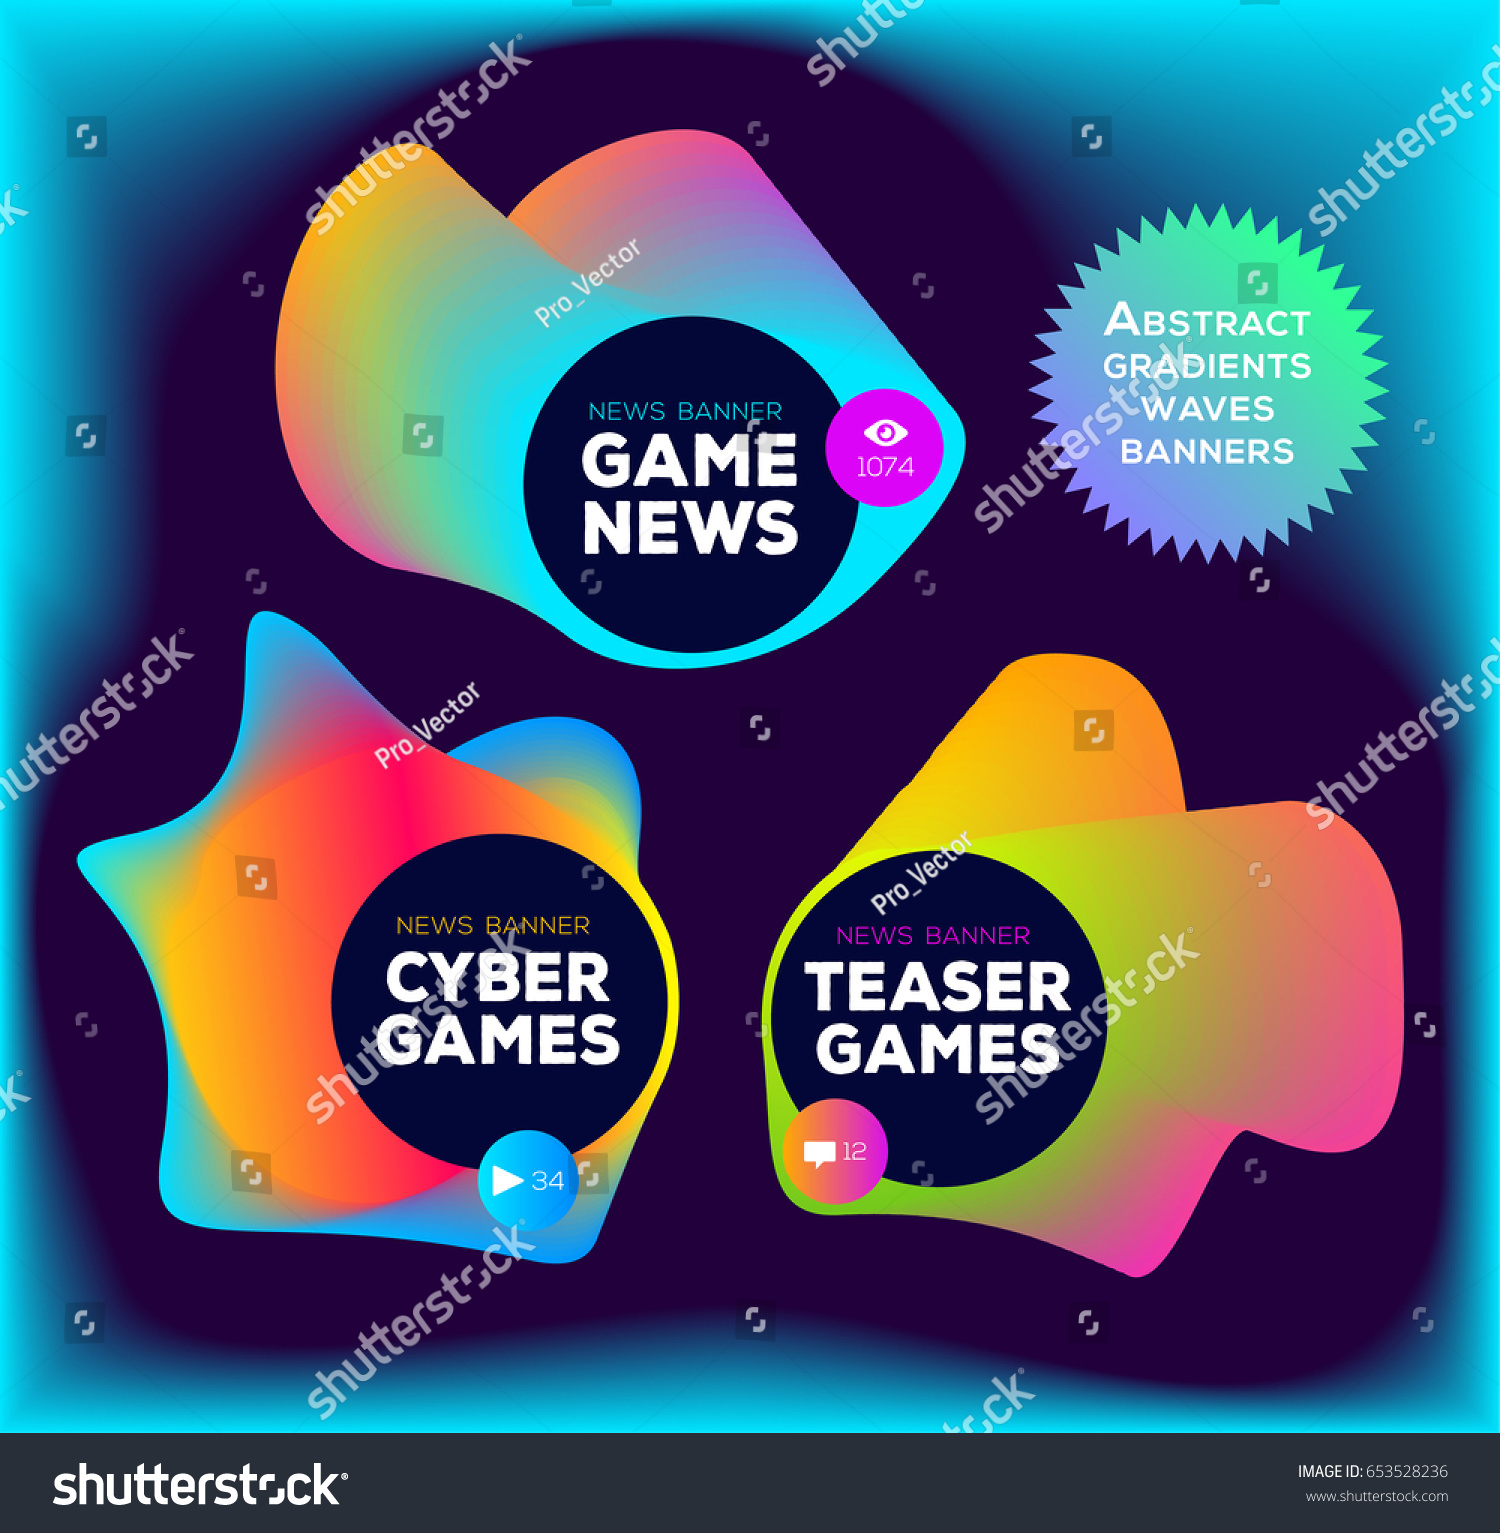 Colorful Abstract Gradient Banners Games Music Stock Vector ...